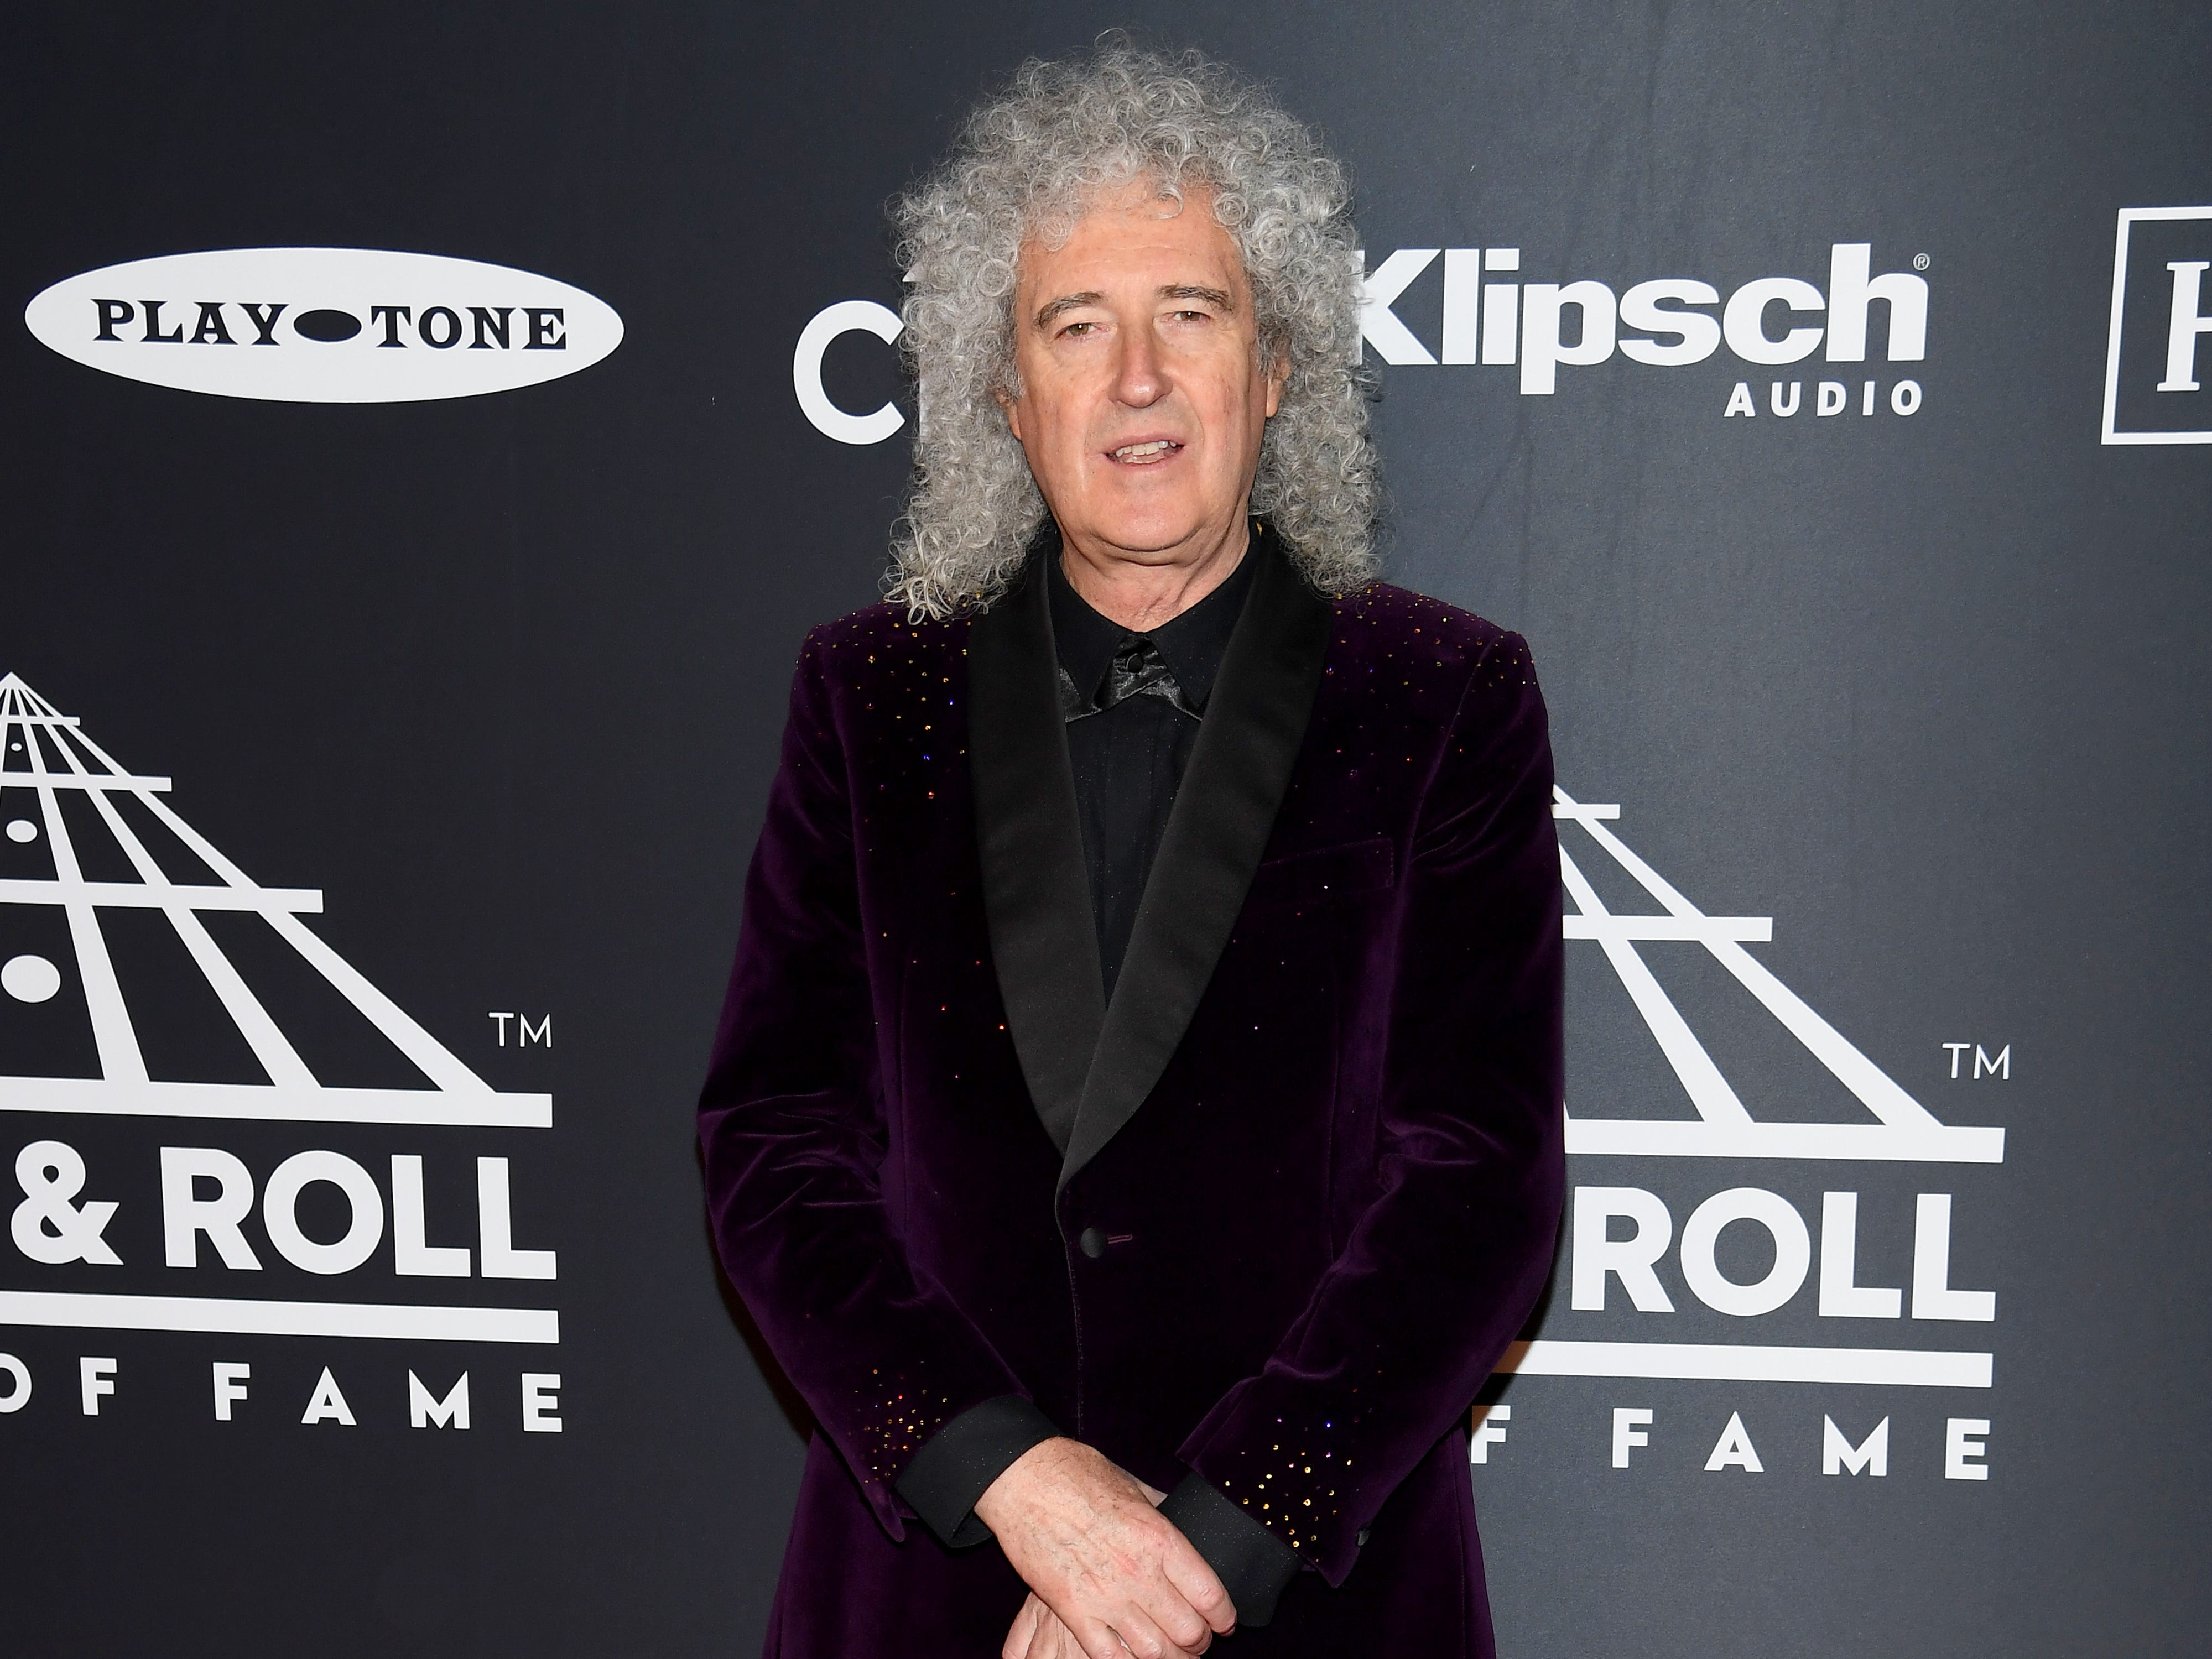 NEW YORK, NEW YORK - MARCH 29: Brian May attends the 2019 Rock & Roll Hall Of Fame Induction Ceremony at Barclays Center on March 29, 2019 in New York City. (Photo by Dimitrios Kambouris/Getty Images For The Rock and Roll Hall of Fame) ORG XMIT: 775320639 ORIG FILE ID: 1139163426